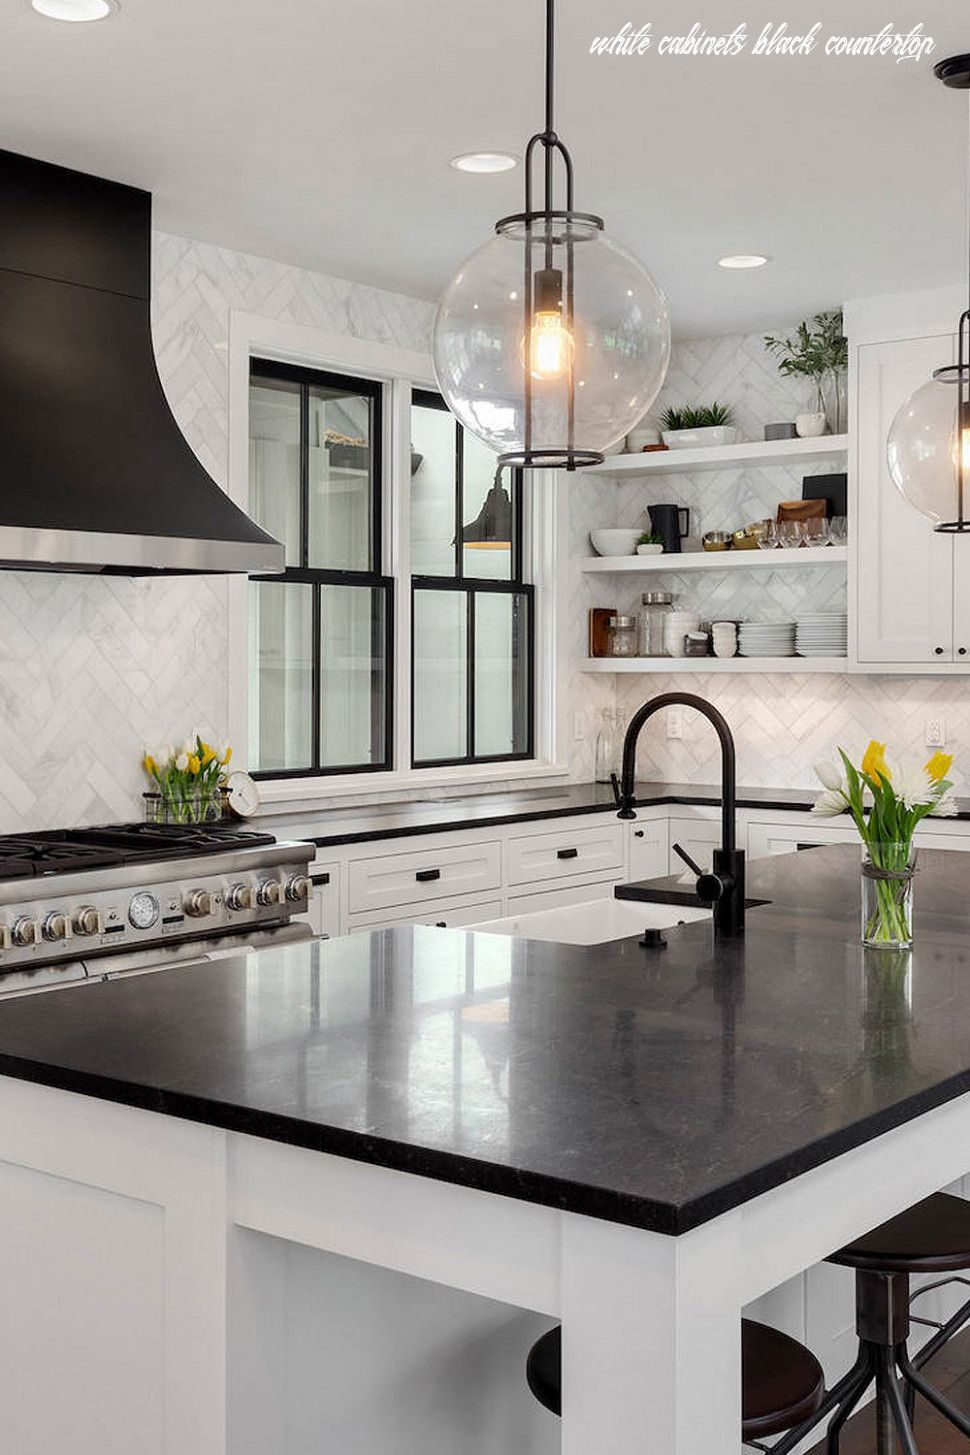 Five Things To Avoid In White Black Countertop in